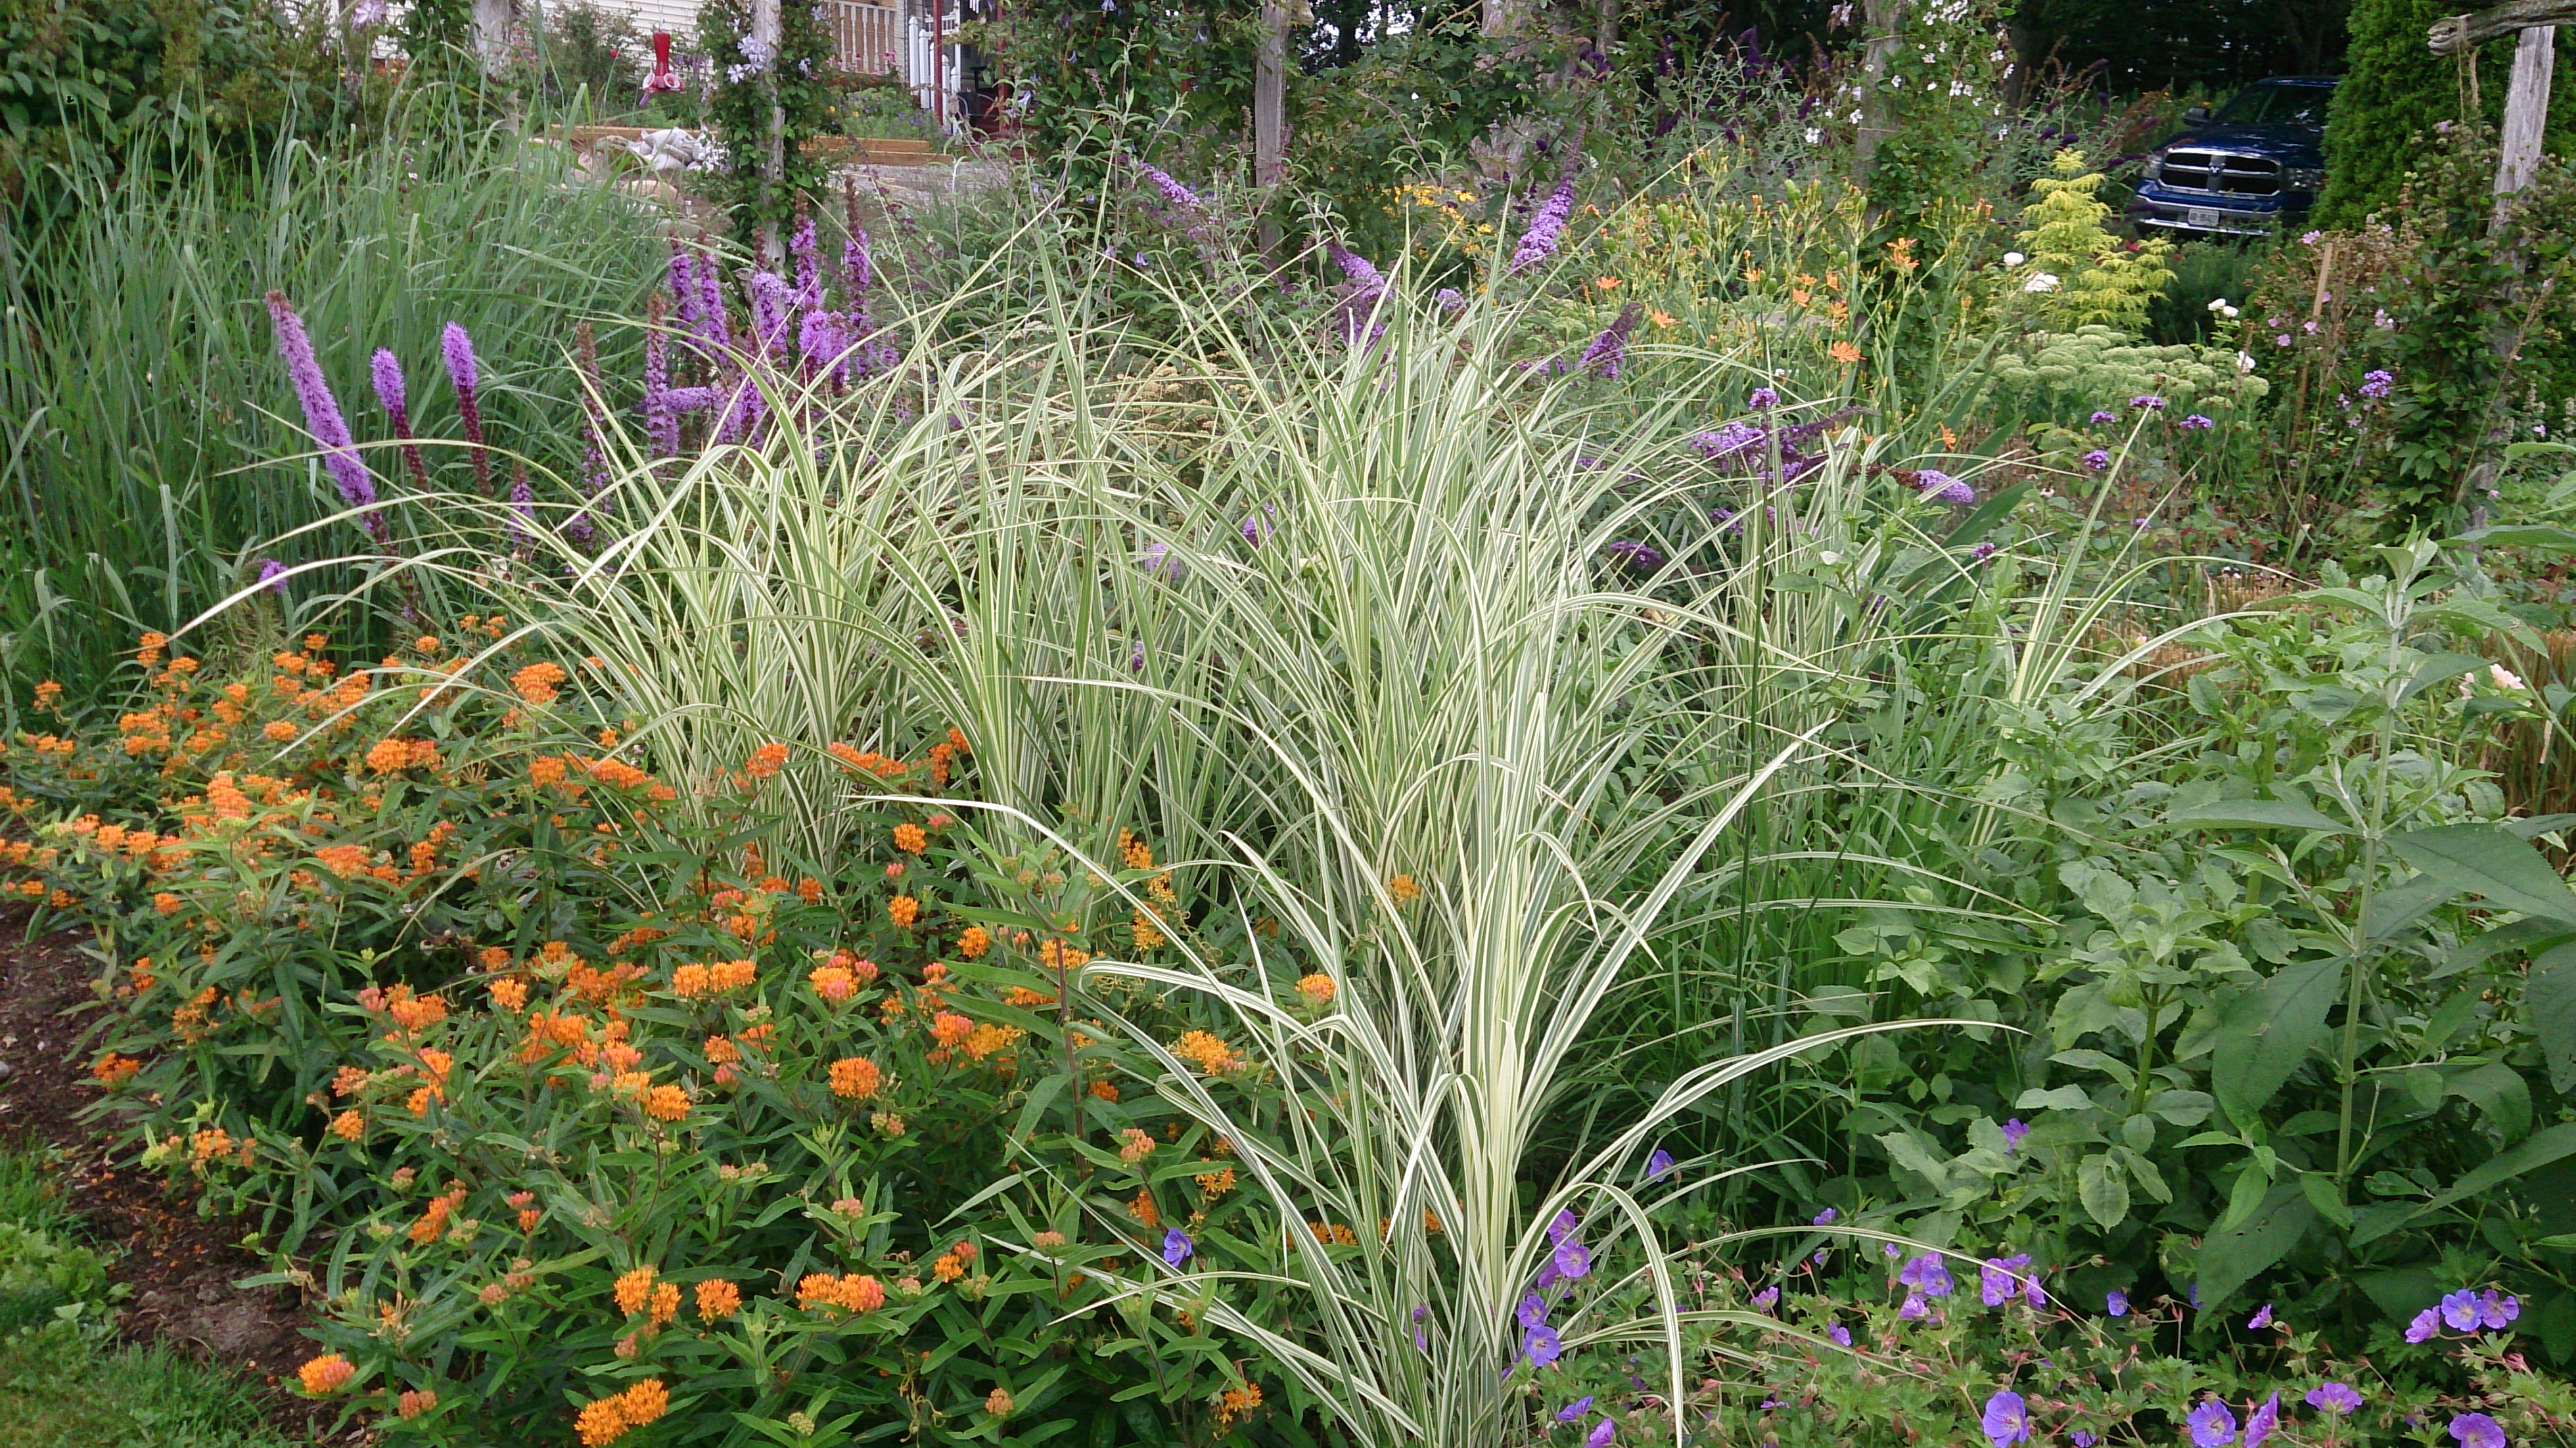 Cabaret grasses amidst perennials